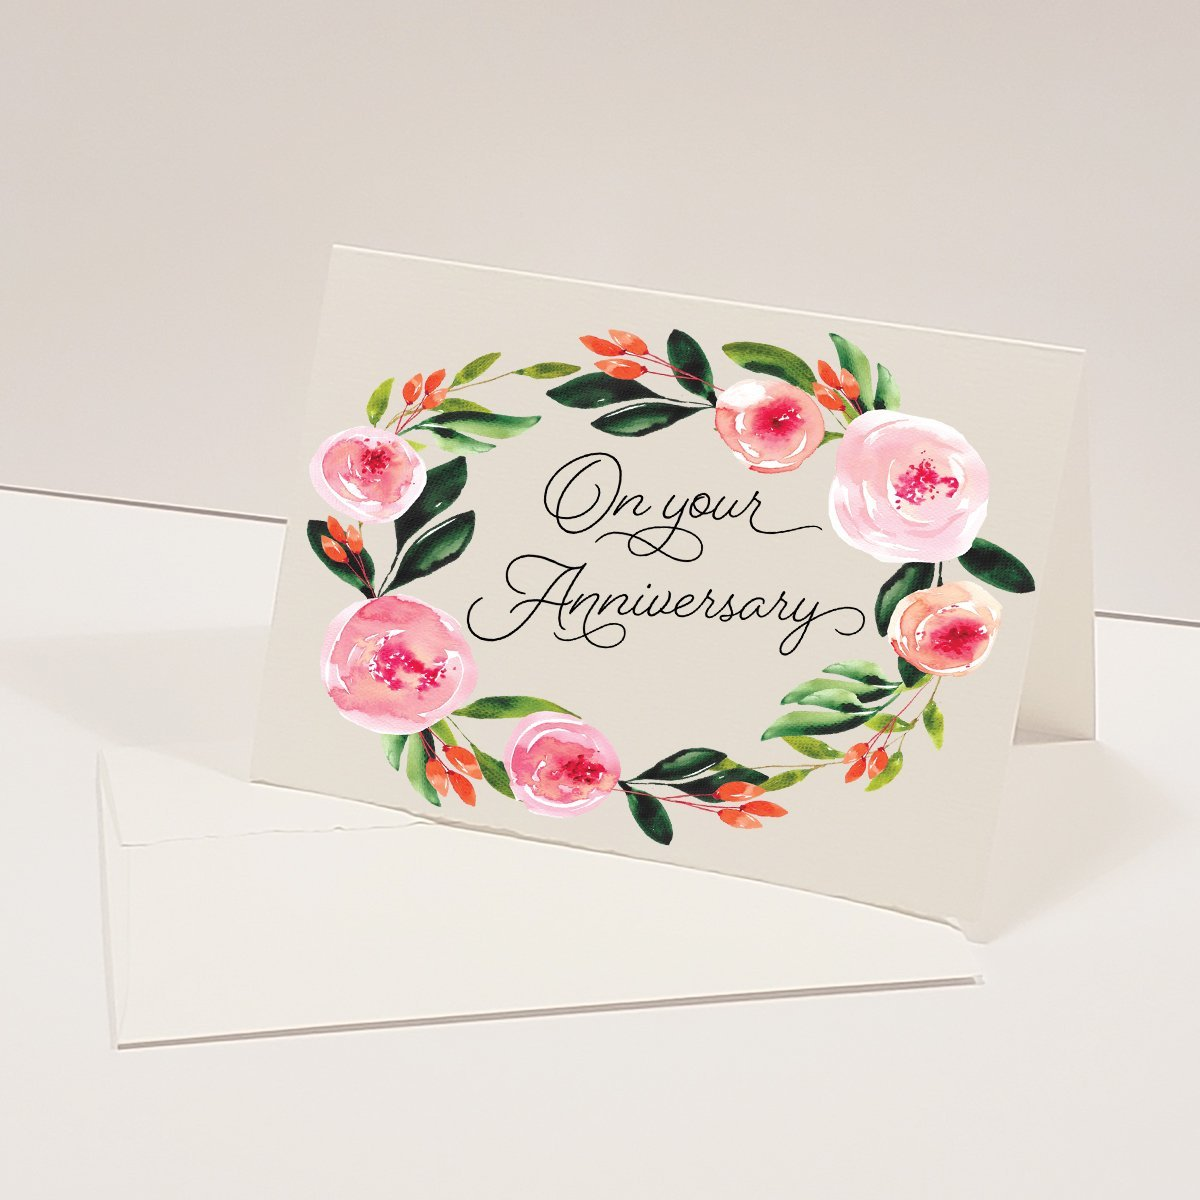 On Your Anniversary - Greeting Card - Netties Expressions